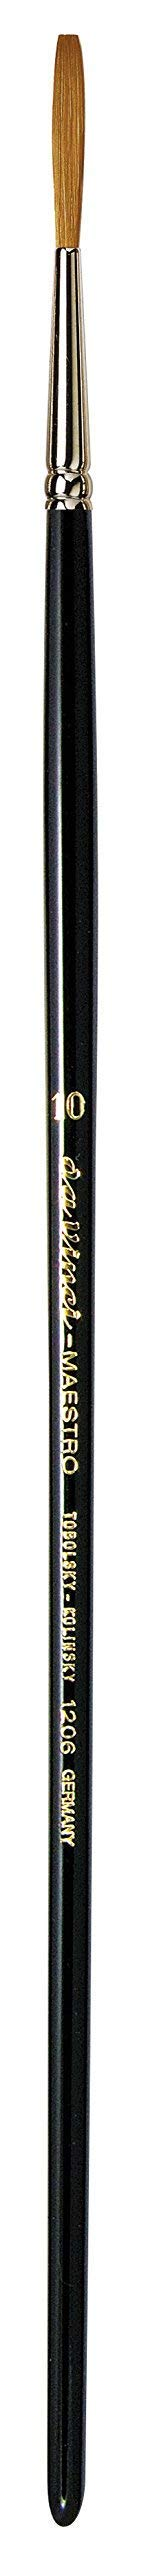 da Vinci Oil & Acrylic Series 1206 Maestro Liner Brush, Medium-Length Straight Edge Kolinsky Red Sable with Black Polished Handle, Size 10 (1206-10)